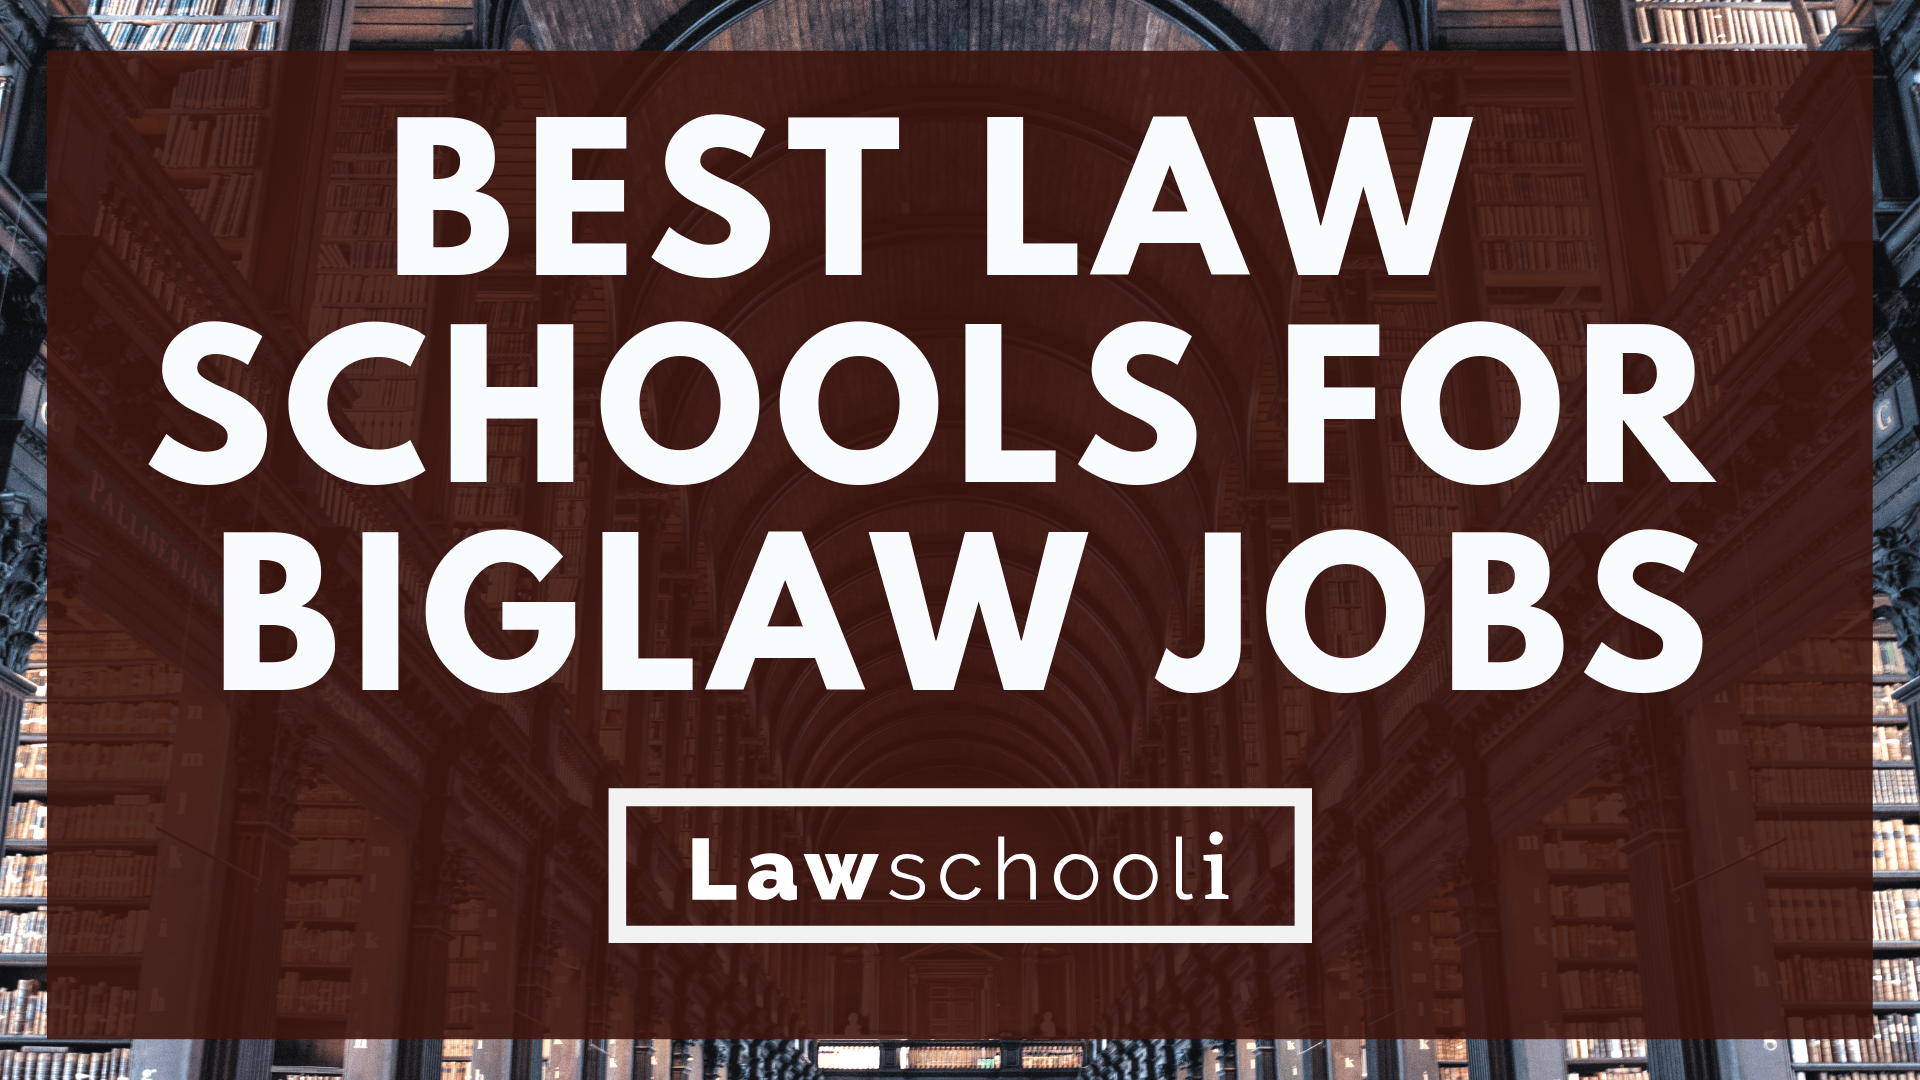 The Best Law Schools for BigLaw Jobs - $180,000 a year